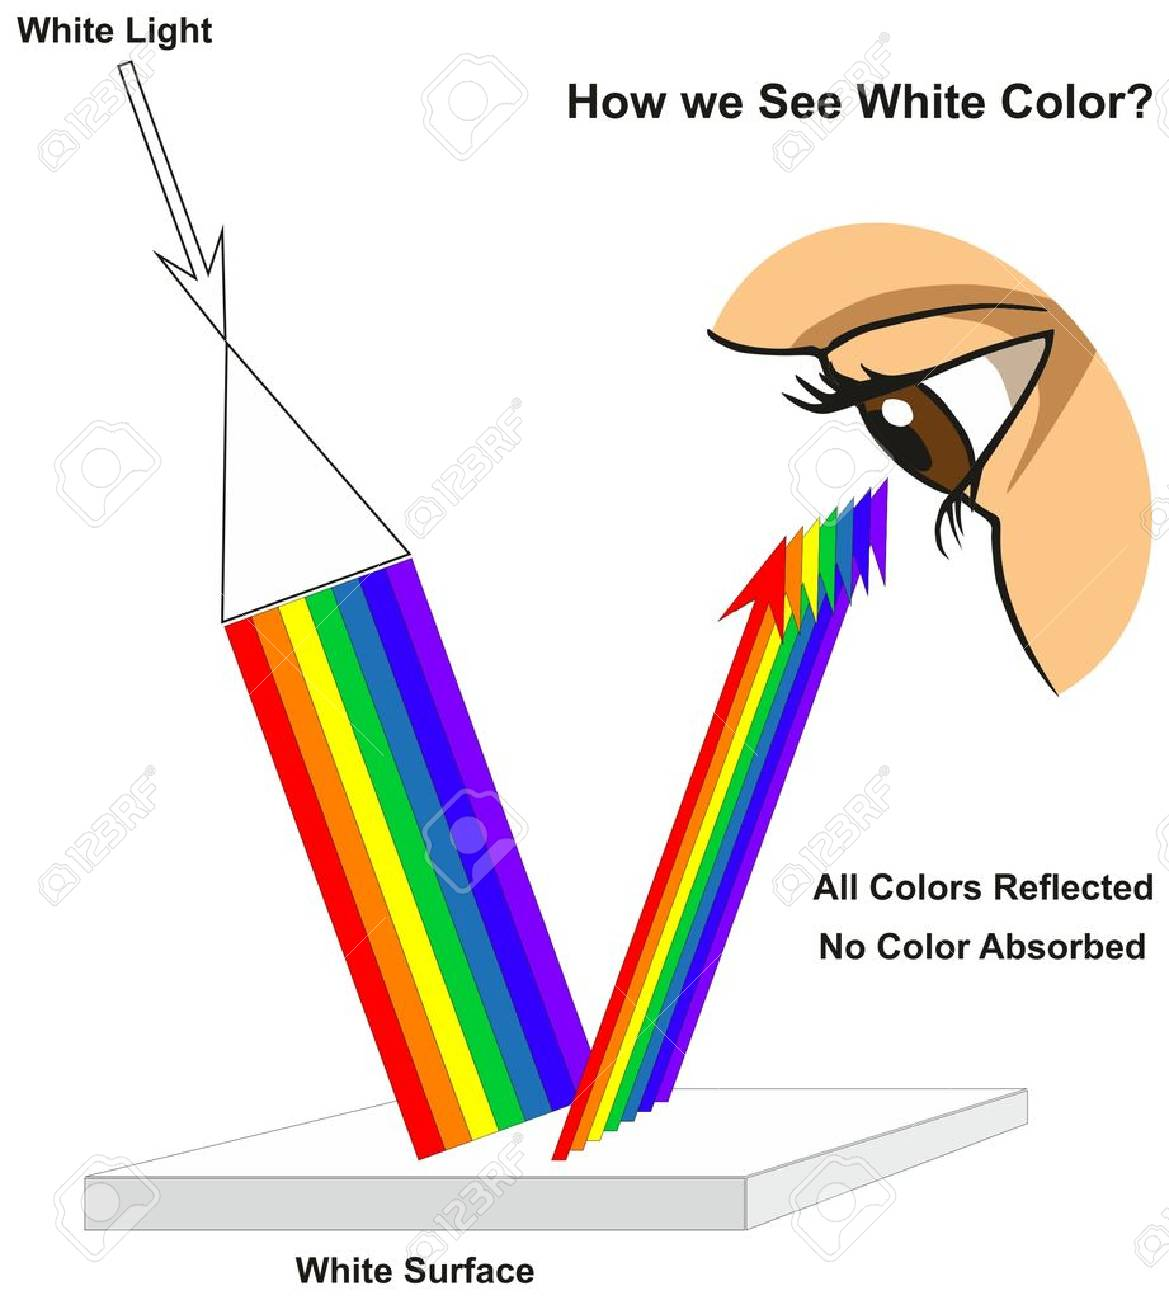 How We See White Color Infographic Diagram Showing Visible Spectrum Light On Surface And Colors Reflected